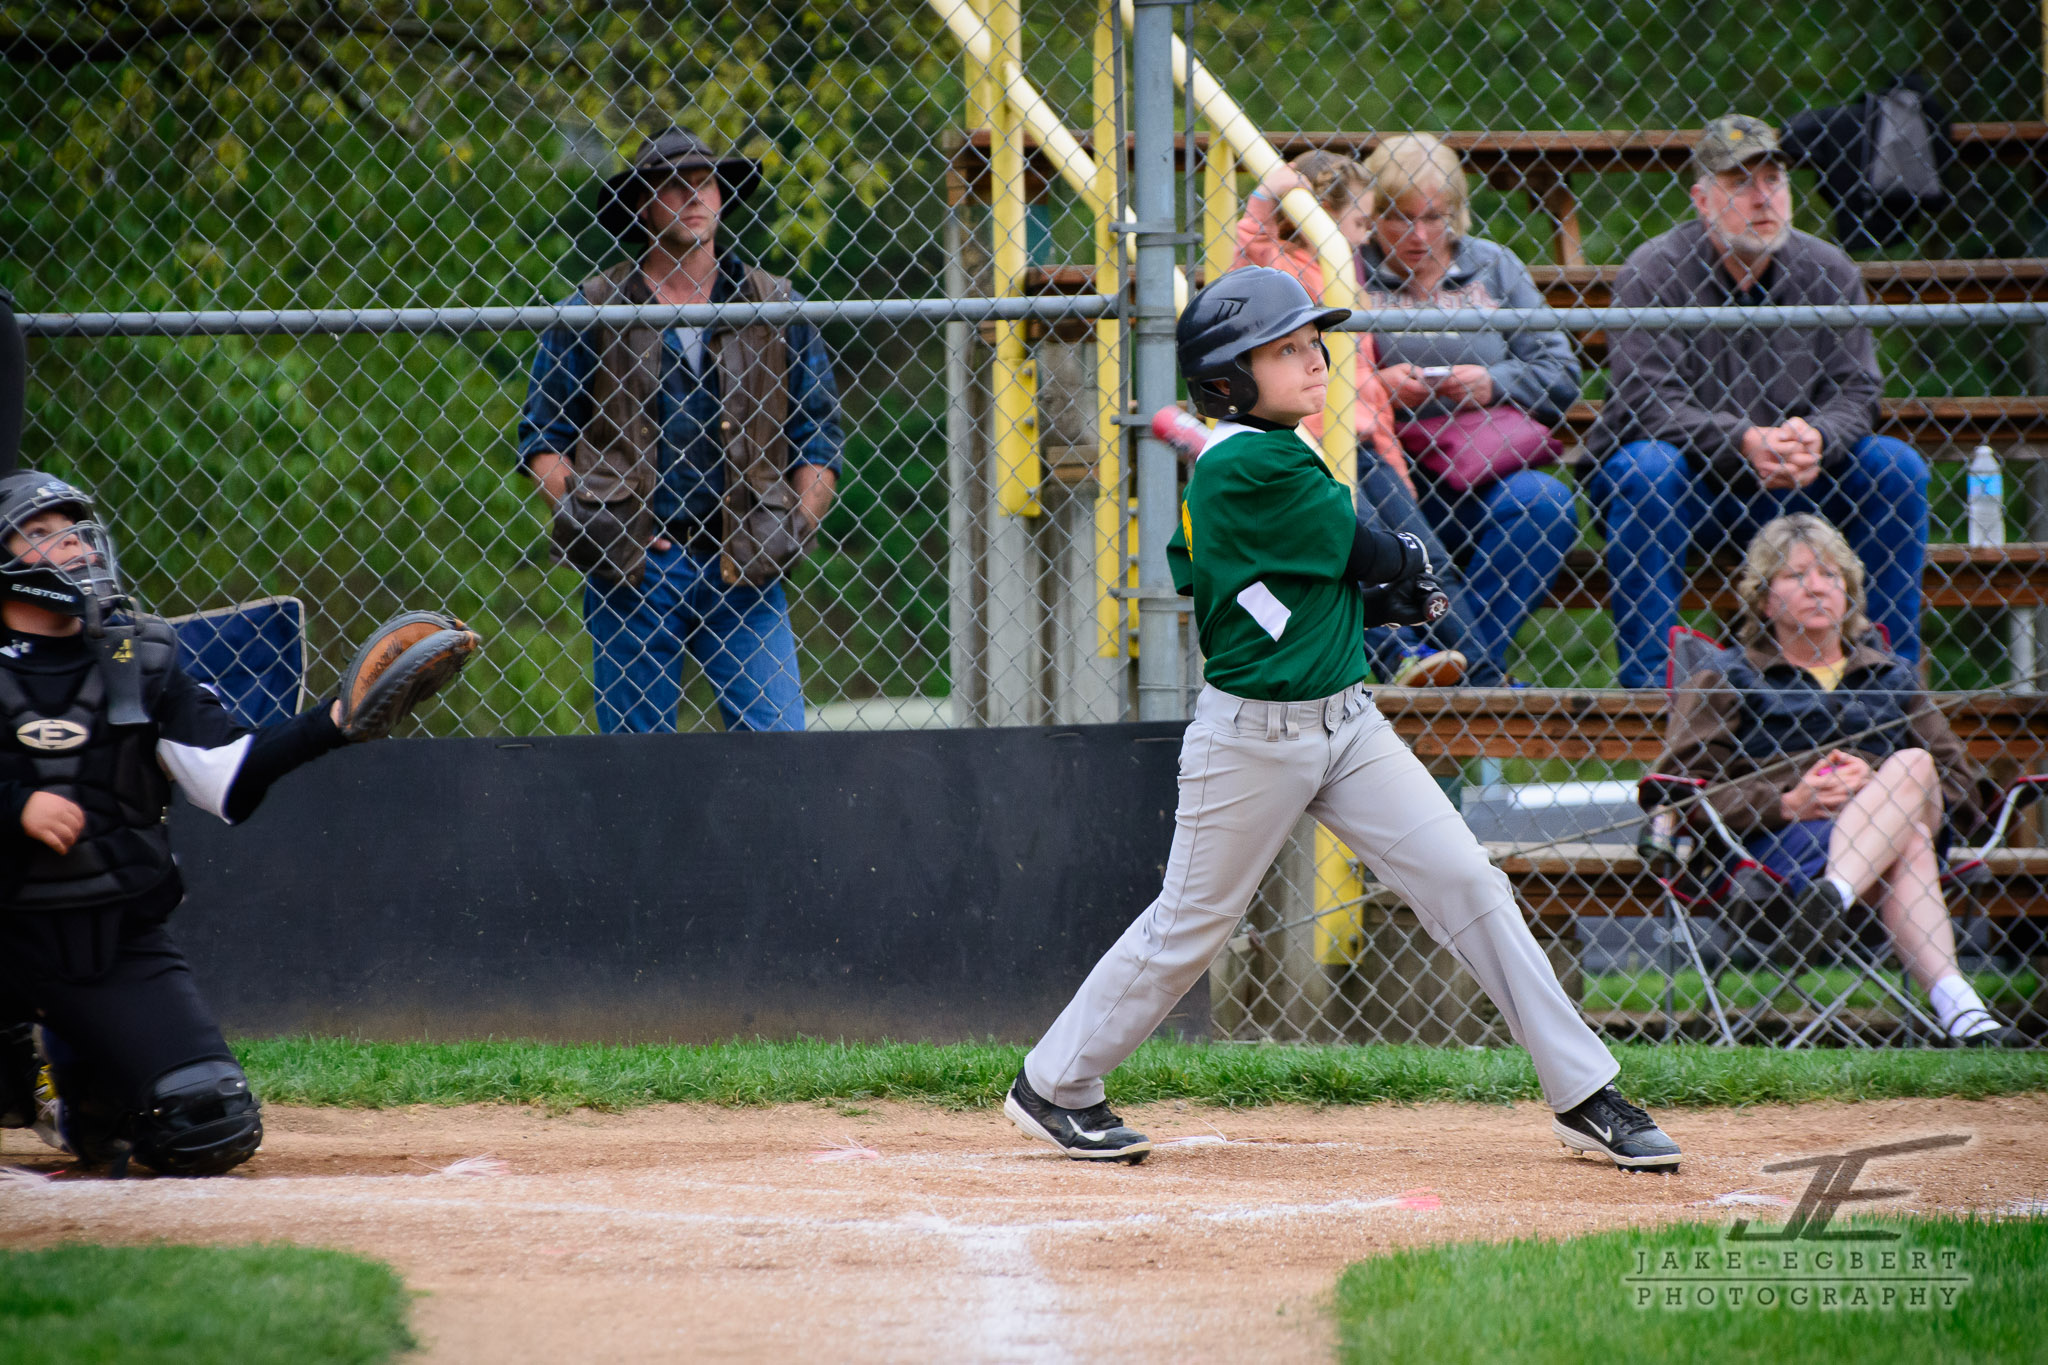 2014-04-16 - CLL Majors Green Sox vs. Lents/Mt. Hood Rebels. Click through to see the game gallery and store.